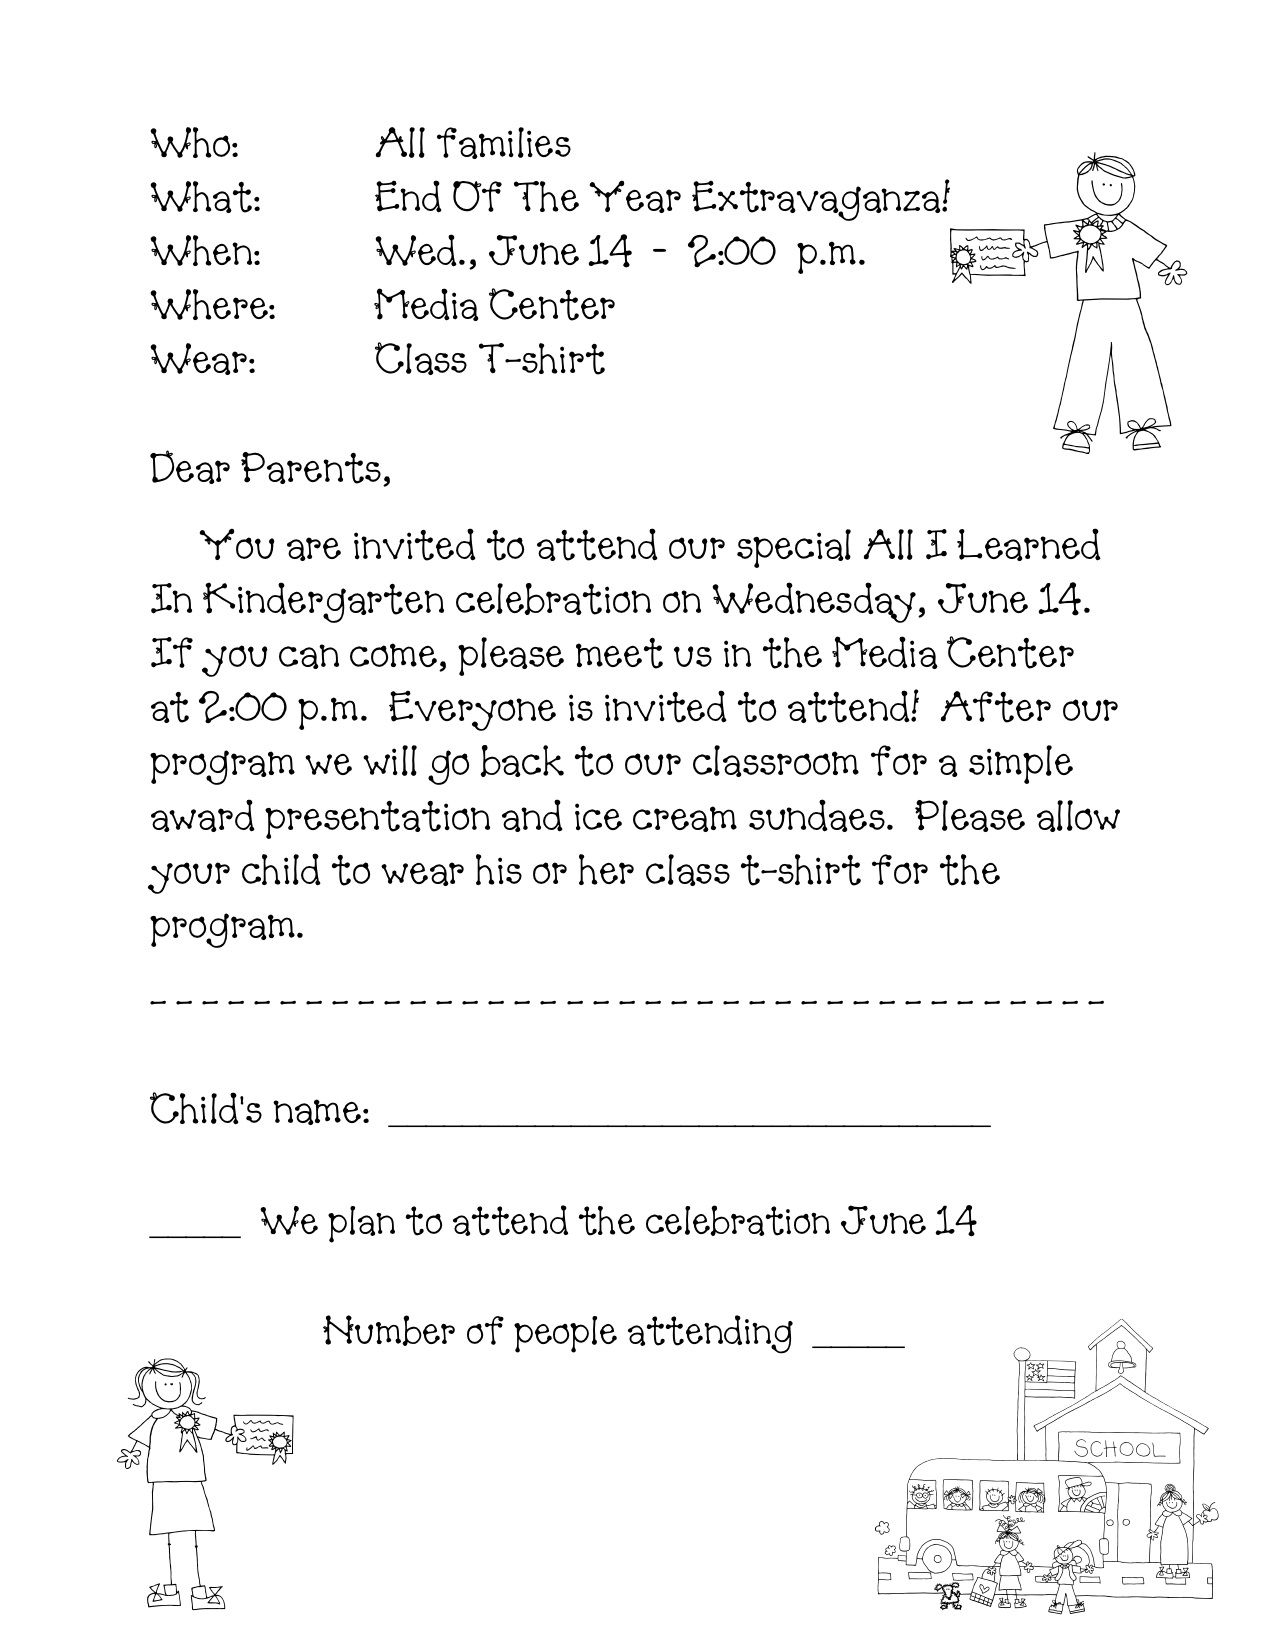 kindergarten welcome letter template example-preschool graduation program sample Google Search 3-e